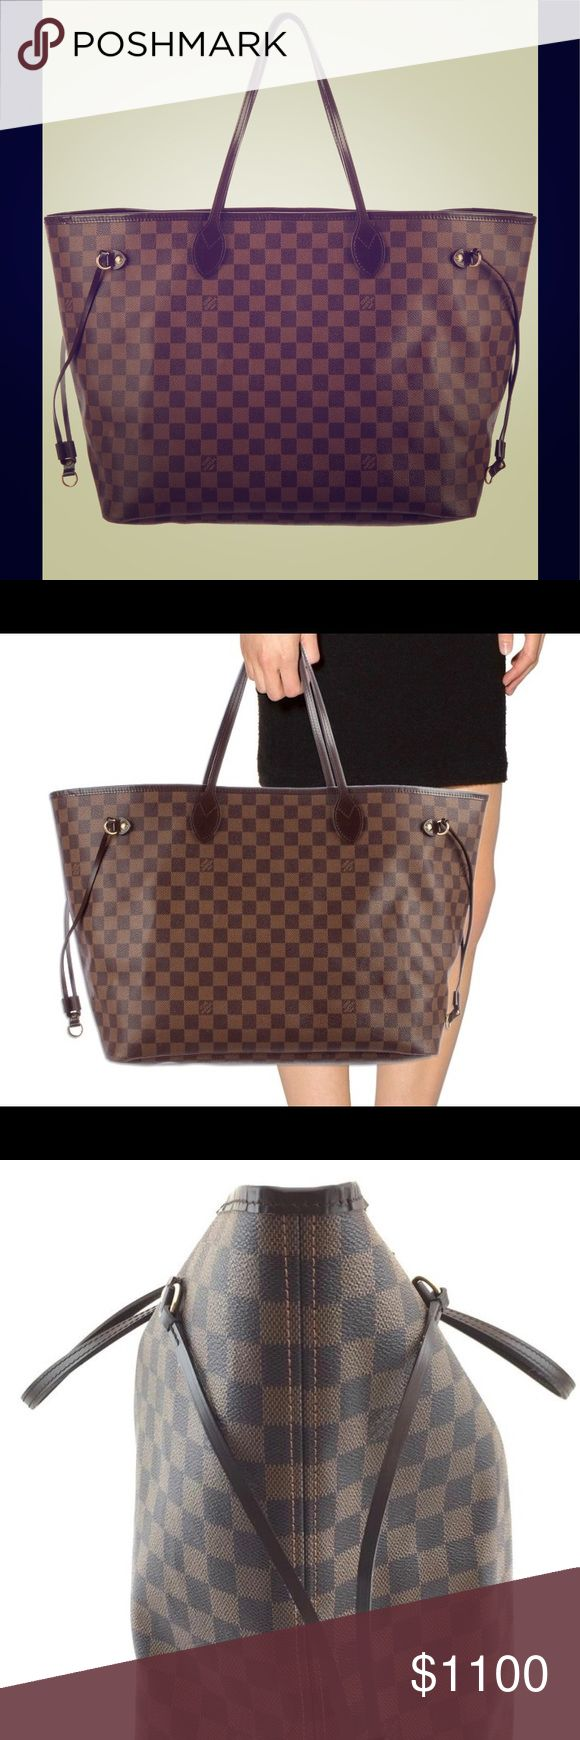 💕AUTHENTIC NEVERFULL GM EBENE💕 100% AUTHENTIC LOUIS VUITTON NEVERFULL GM. NO TRADES. $1100 via P AY P A L SINCE POSH TAKES HUGE FEES. This price is for P A Y P A L price. Want to buy it here I have to price it higher since posh takes huge fees. DATE CODE FL4080 Louis Vuitton Bags Shoulder Bags